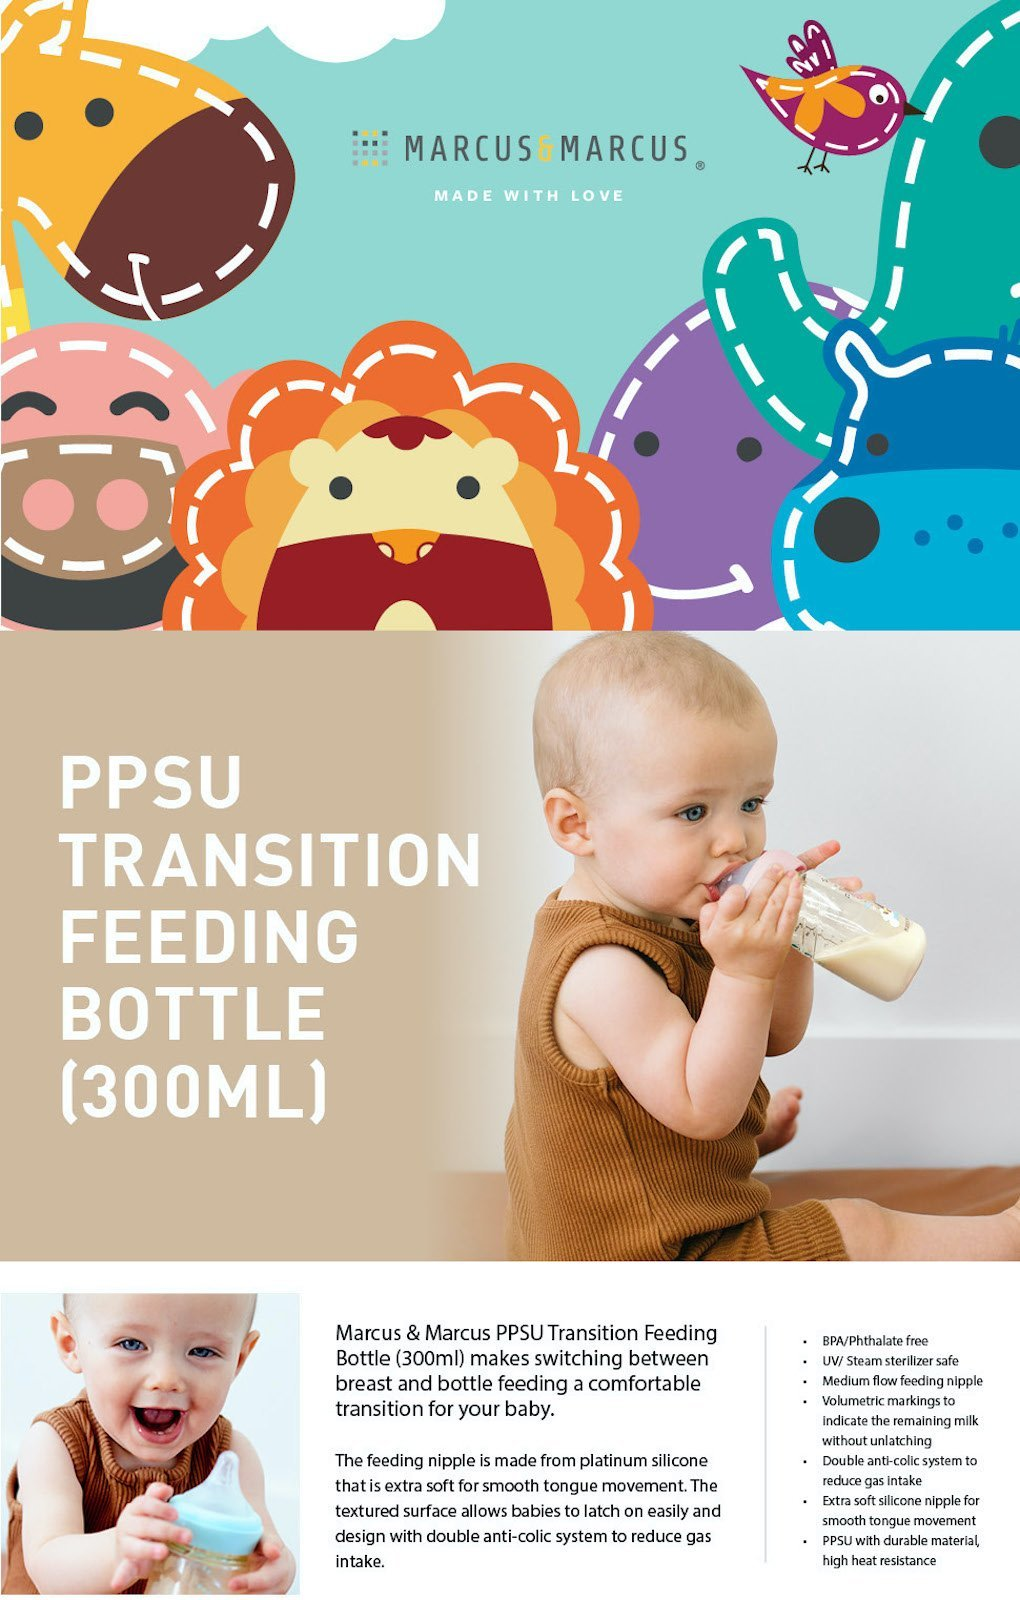 PPSU Fedding Bottle (300ml)